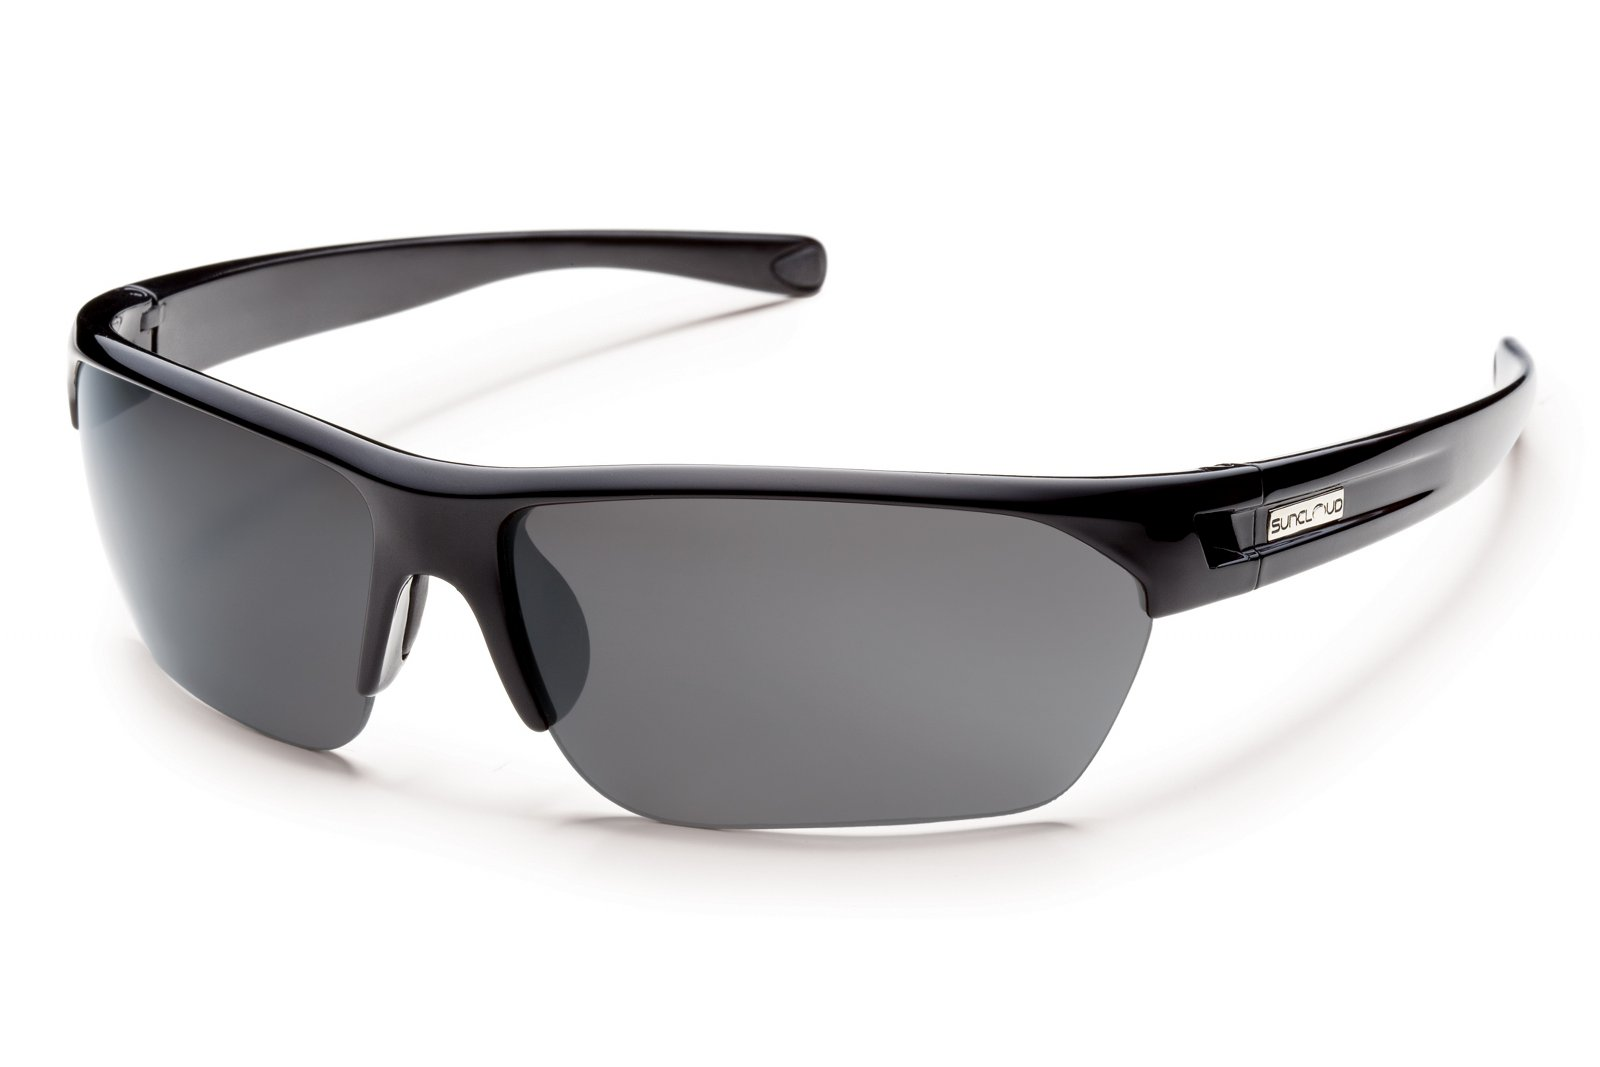 49810c7508b Suncloud Detour Sunglasses Black - Gray Polarized UV Lightweight ...